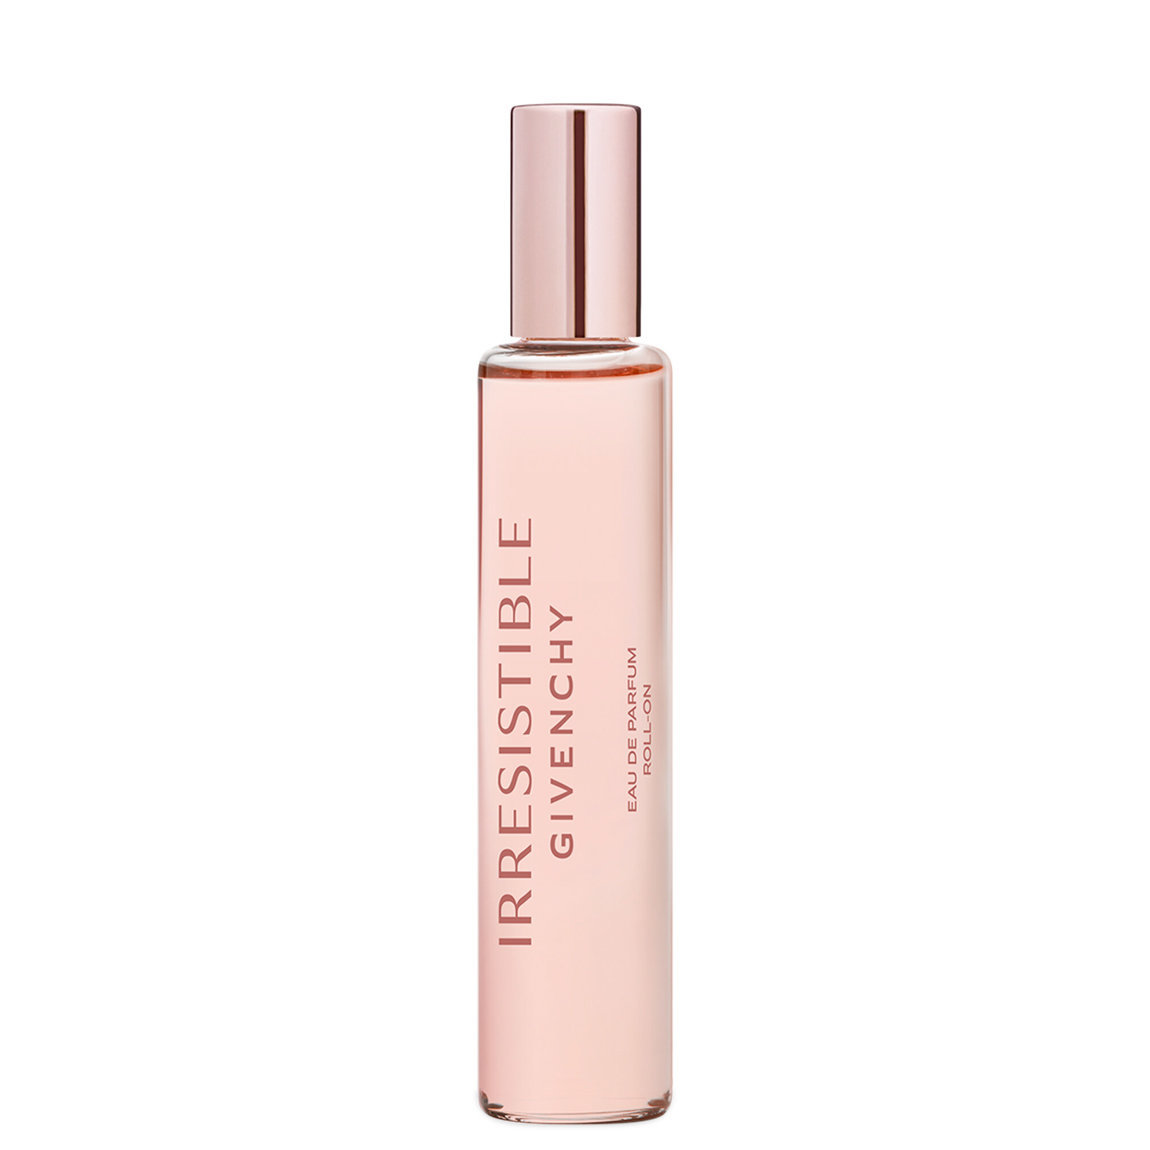 Givenchy Irresistible EDP Rollerball alternative view 1.